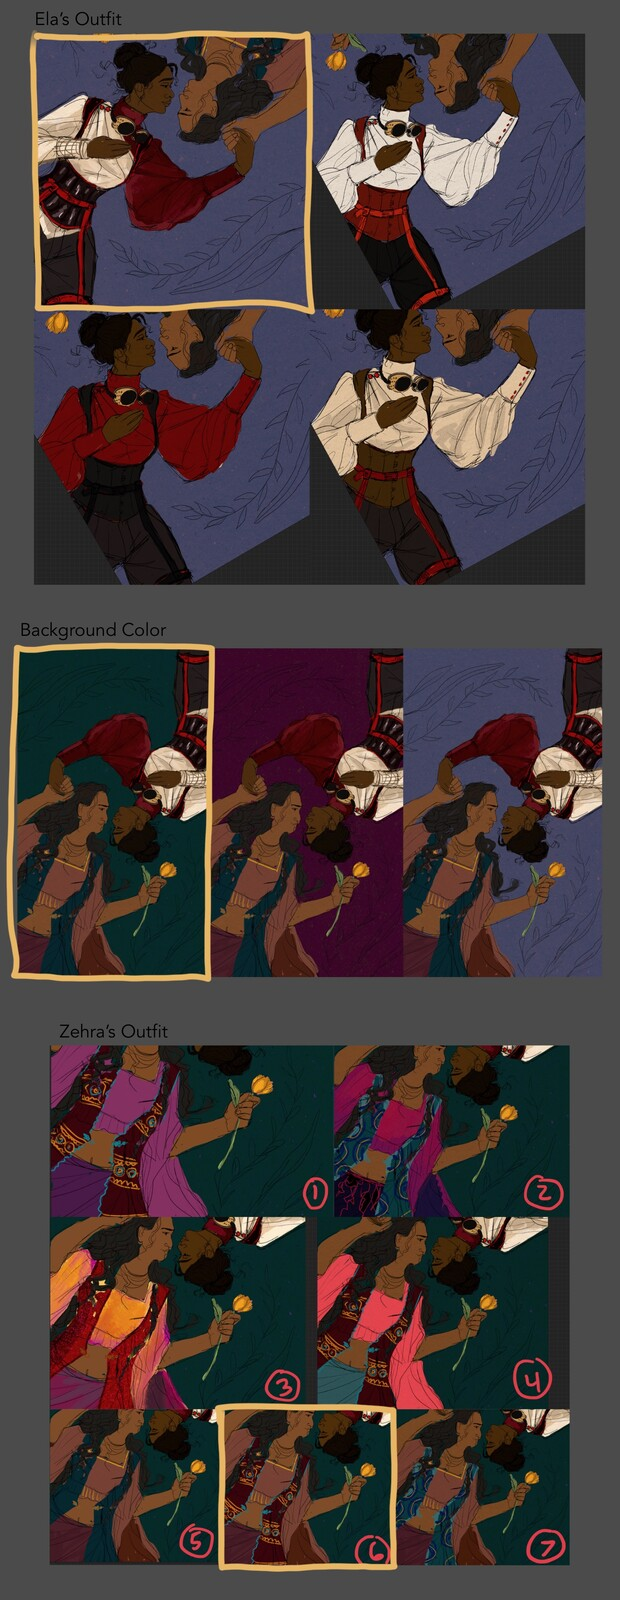 Color comps exploring different color palettes! The ones my client selected are outlined in gold.